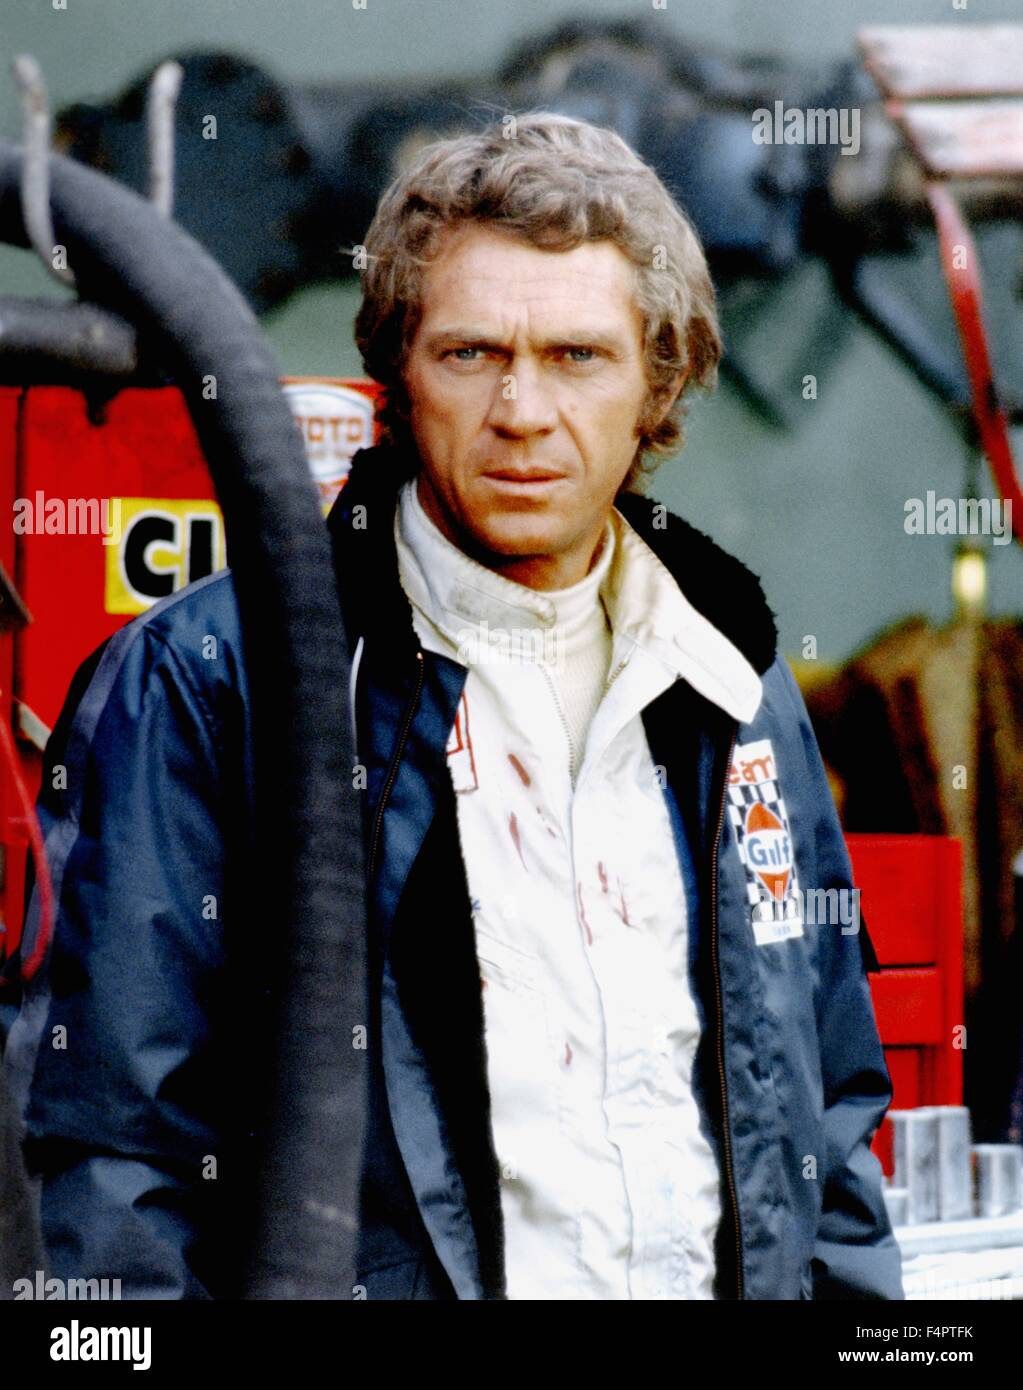 steve mcqueen le mans 1971 directed by lee h katzin cinema stock photo 89012663 alamy. Black Bedroom Furniture Sets. Home Design Ideas